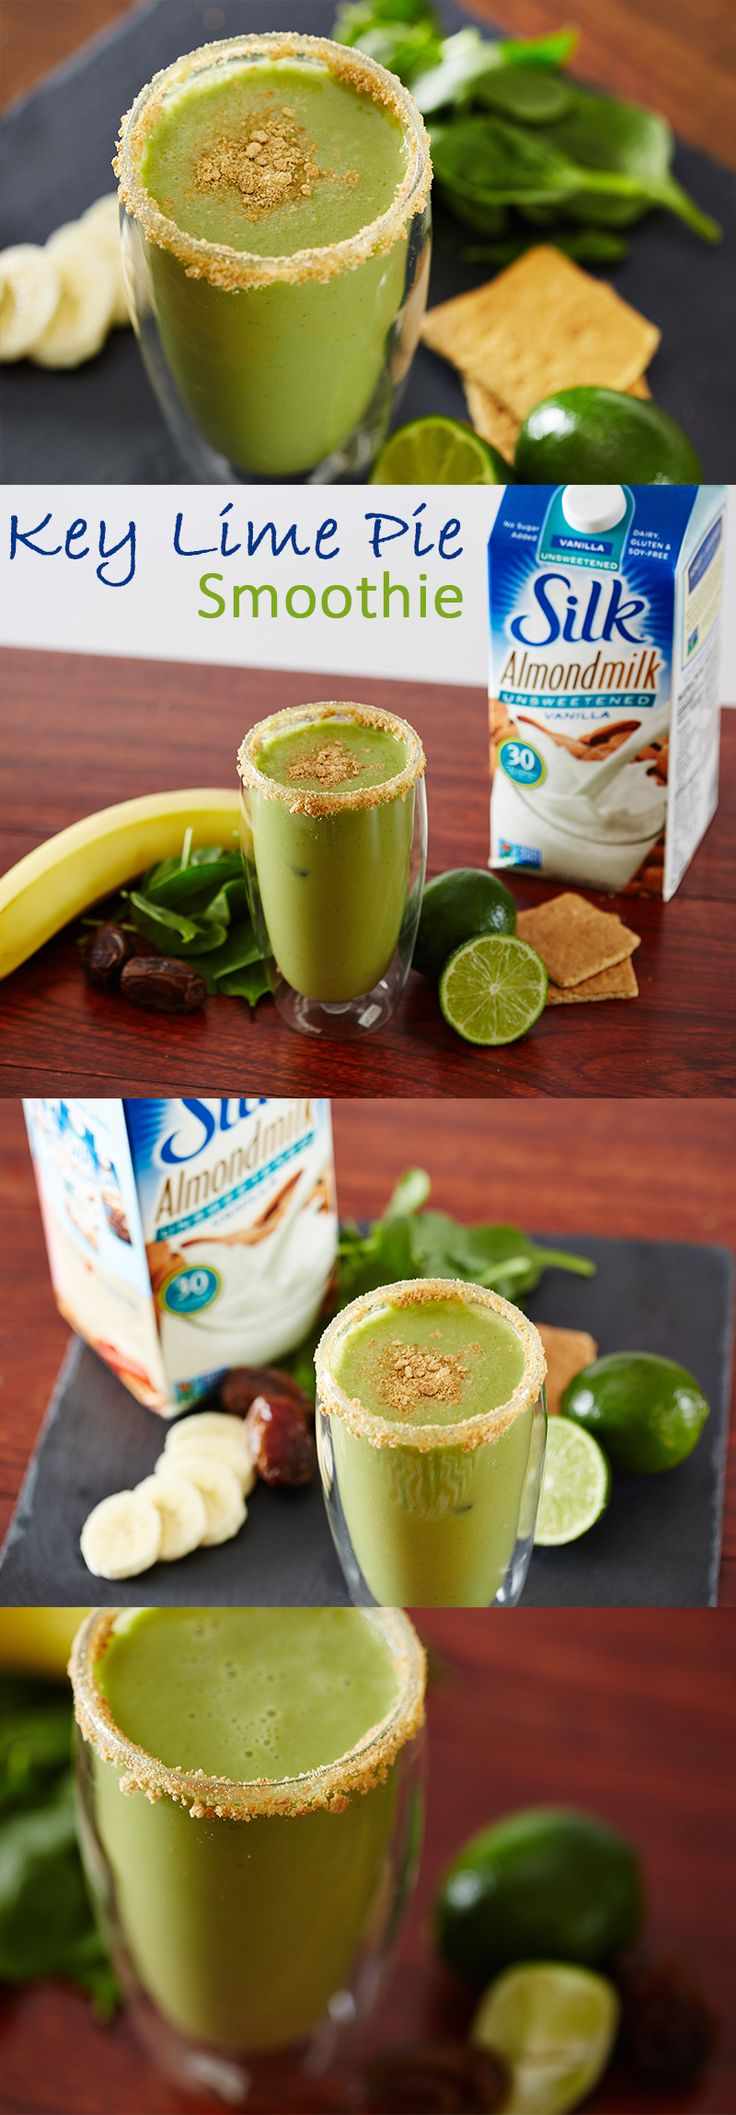 This Key Lime Pie Smoothie makes for a scrumptious dessert and is as delicious as it is good for you! Combine all ingredients, except the graham crackers, in a blender and process until smooth. Then pour into a glass and top with crushed graham crackers!